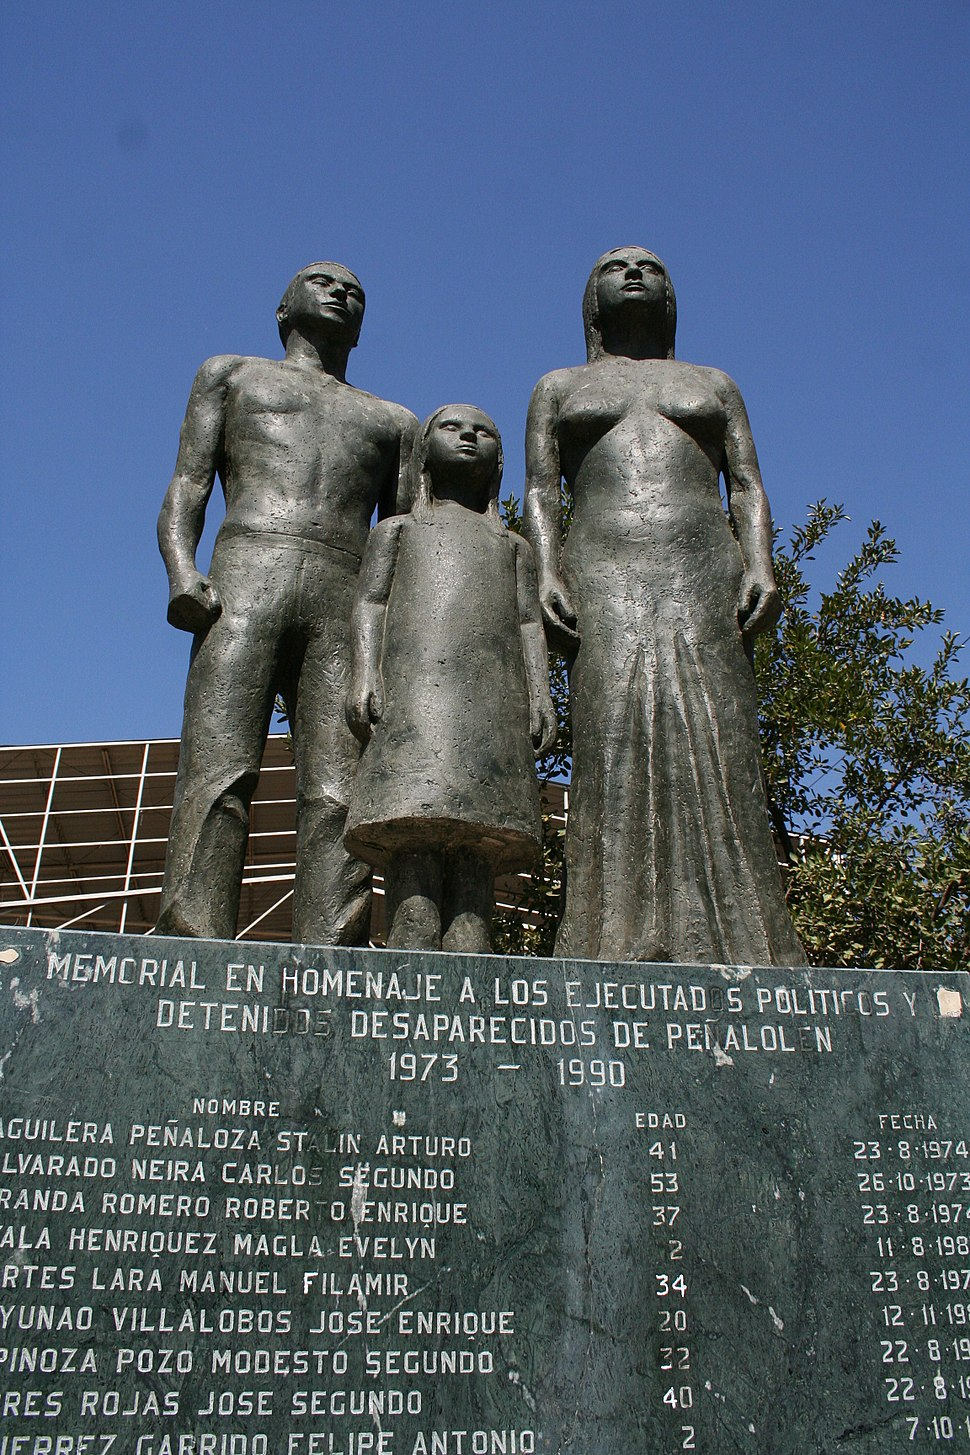 Memorial DDHH Chile 59 Plaza Ictinos